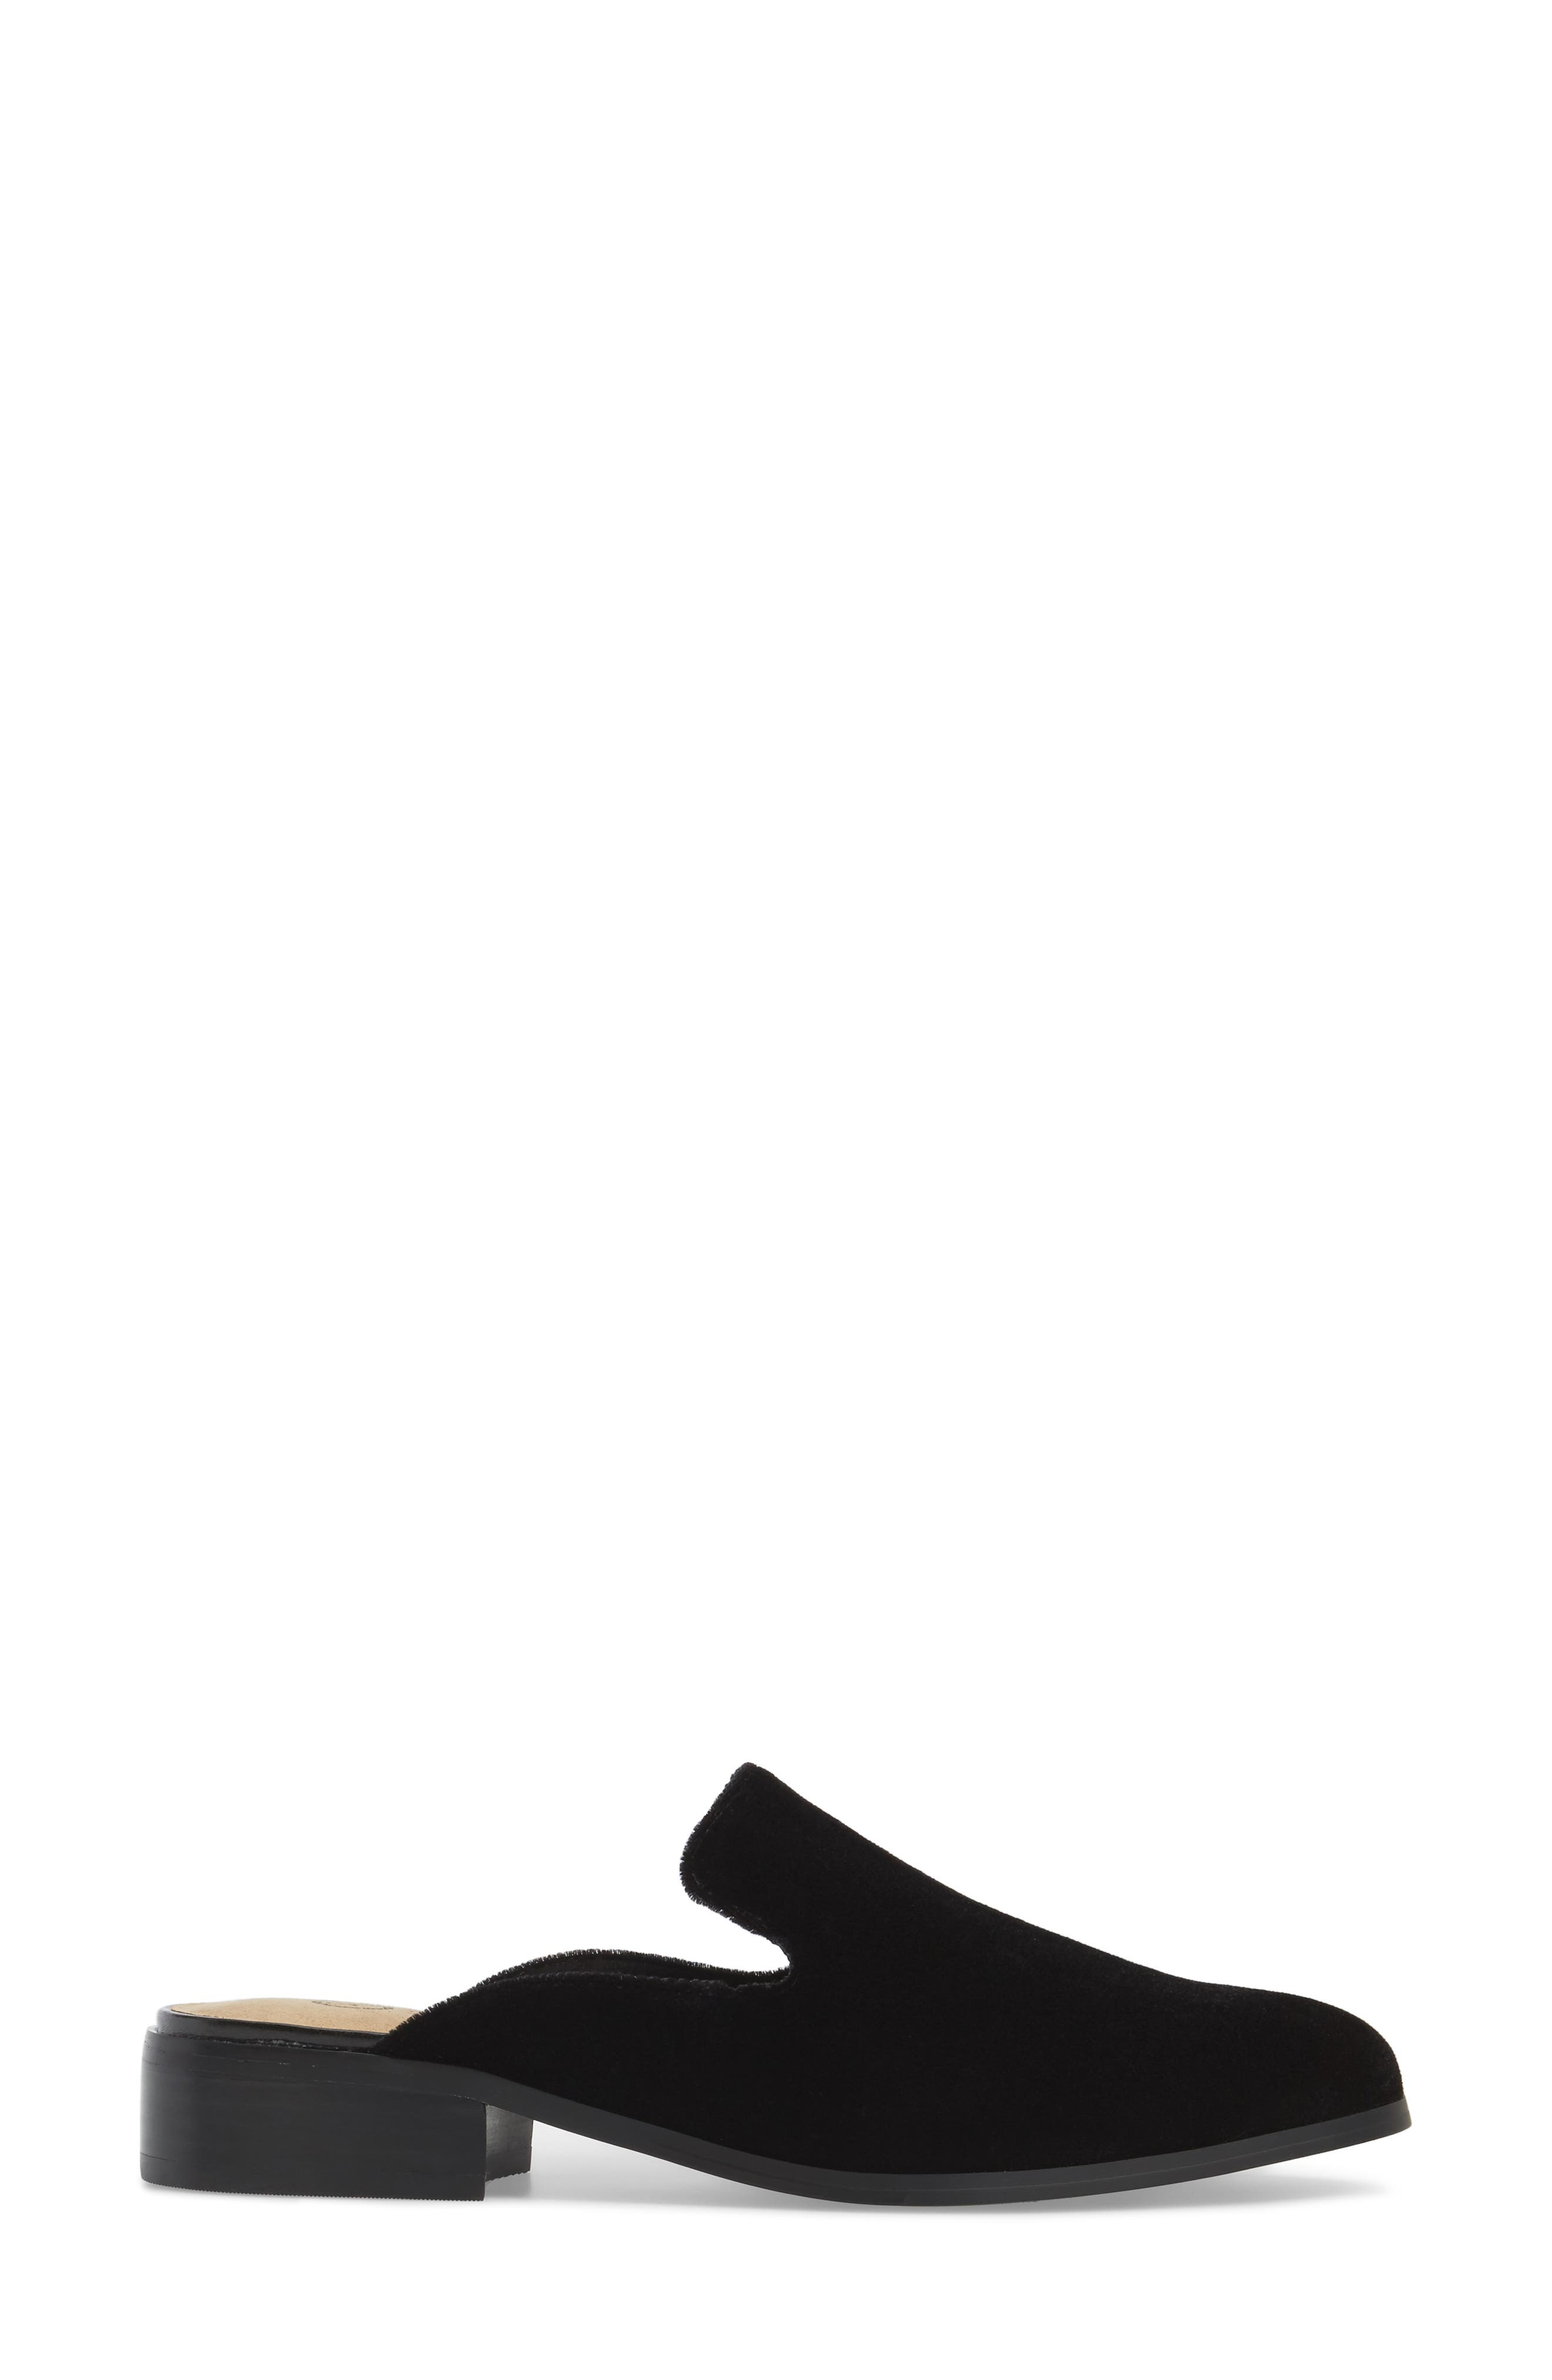 Briar II Loafer Mule,                             Alternate thumbnail 3, color,                             Black Fabric